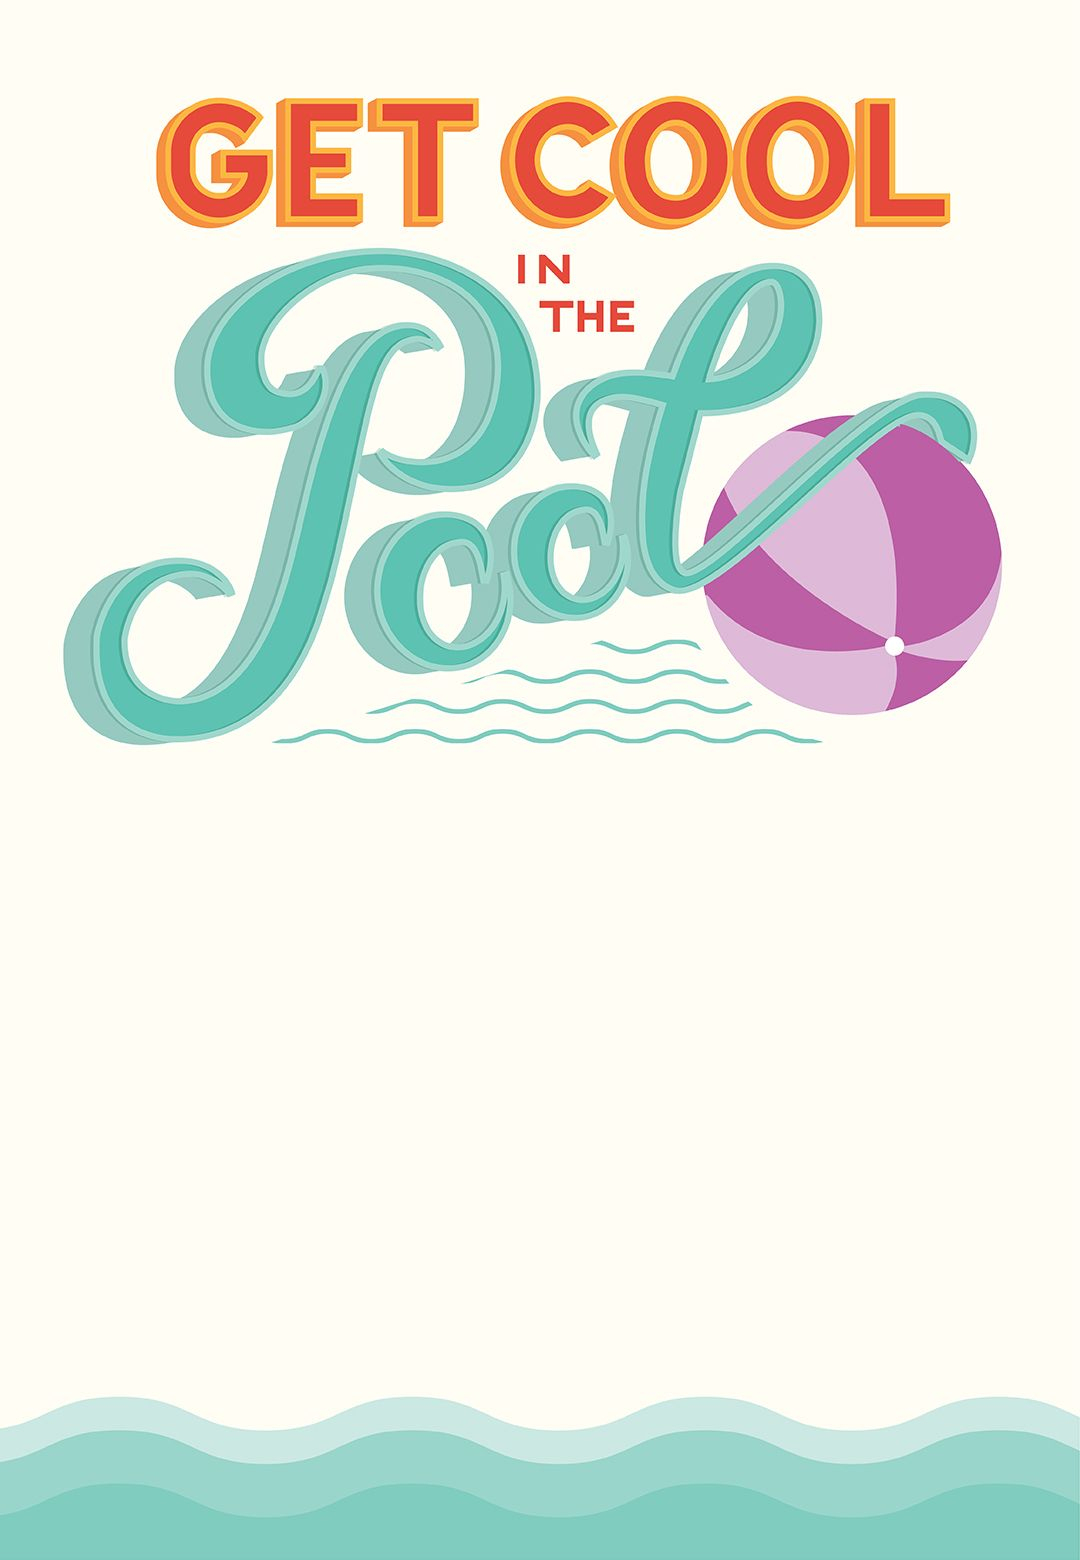 Pool Party - Free Printable Party Invitation Template | Greetings - Free Printable Pool Party Birthday Invitations